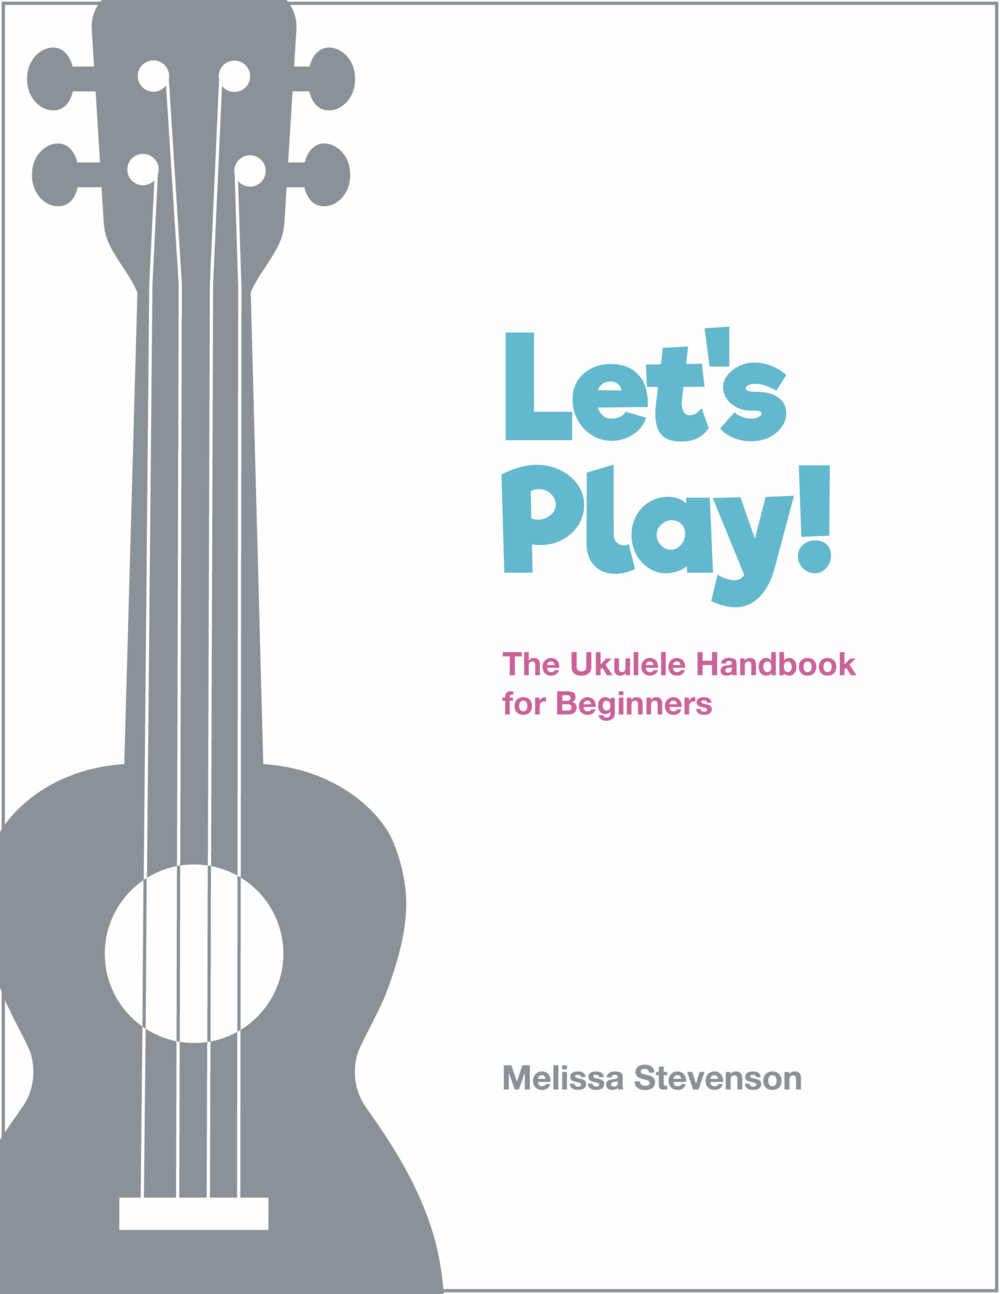 Lets Play_Front Book Cover with border.png